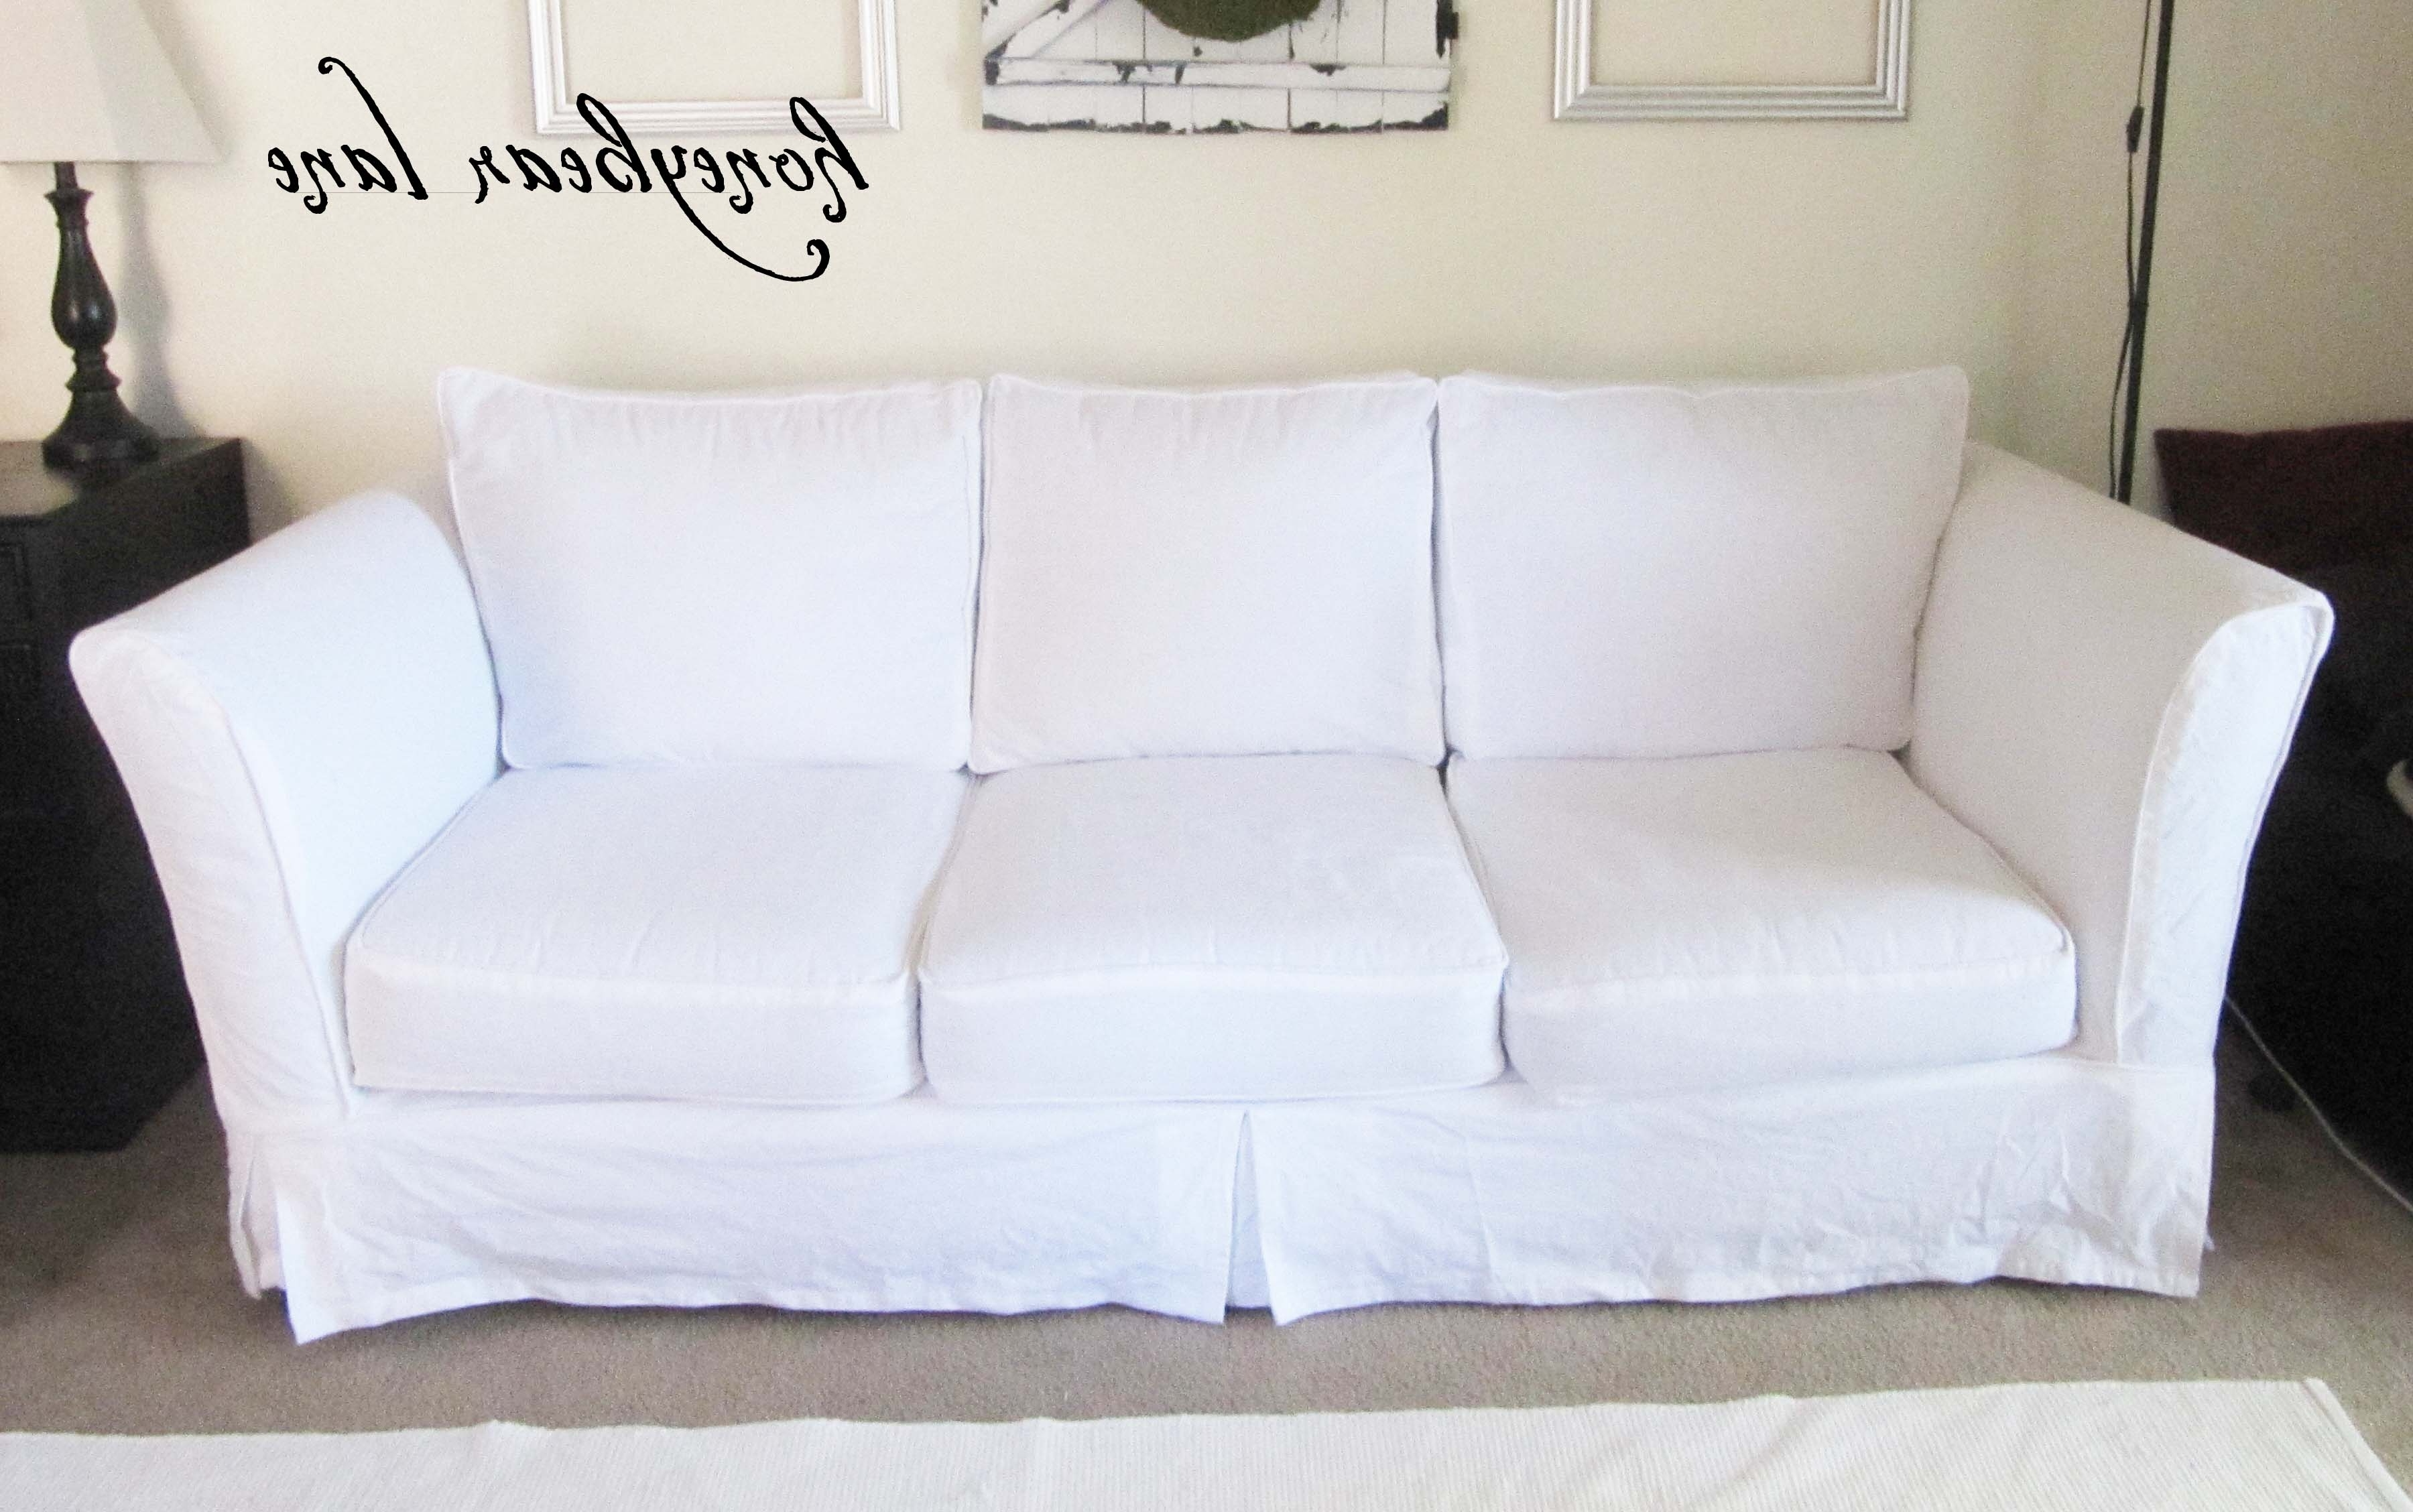 How To Make A Slipcover Part 2: Slipcover Reveal! – Honeybear Lane Inside Trendy Slipcovers Sofas (View 10 of 20)